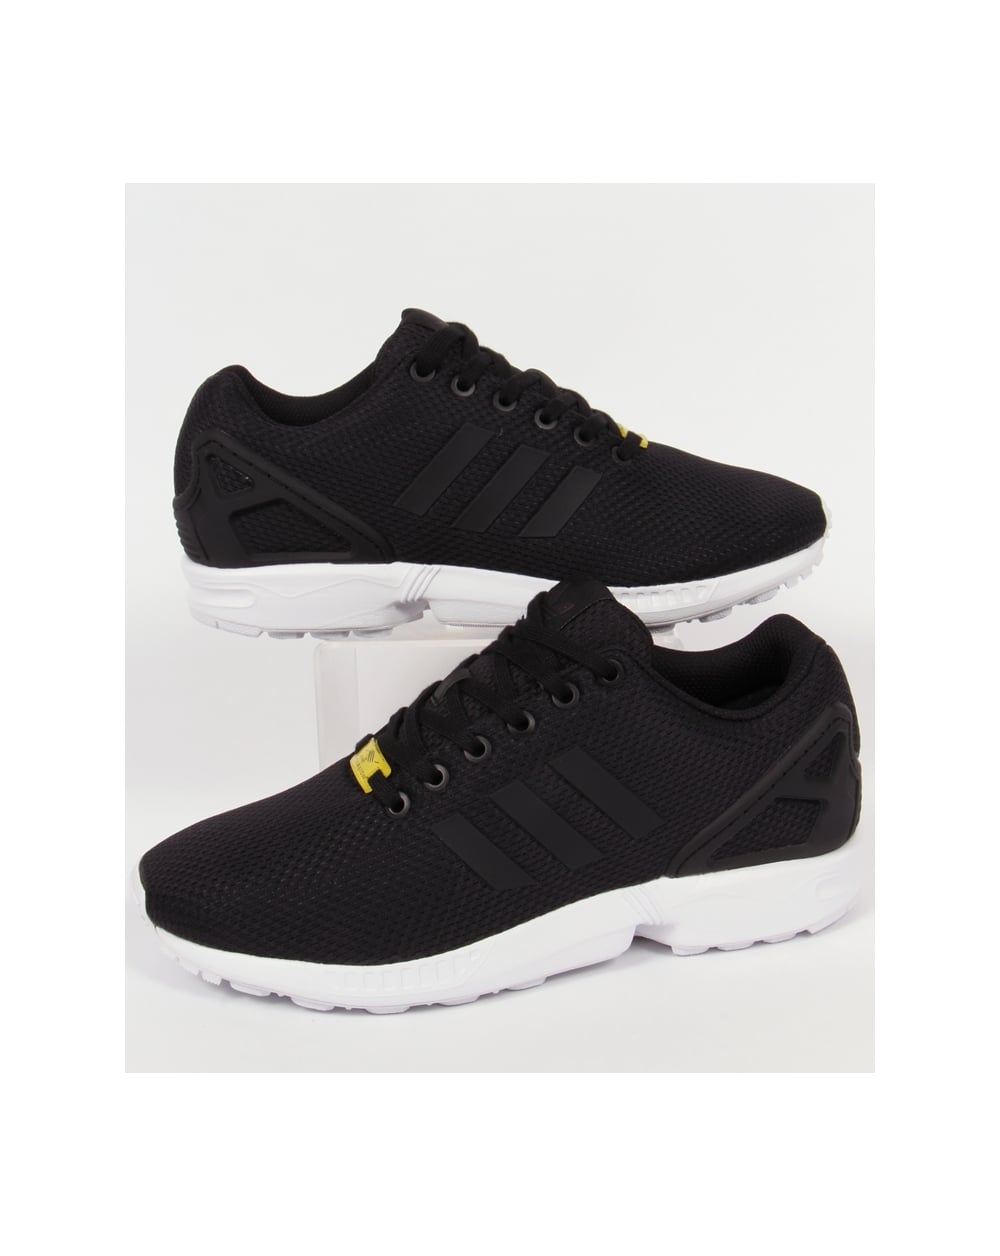 timeless design 455a9 8a19d Adidas Zx Flux Trainers Black/Black